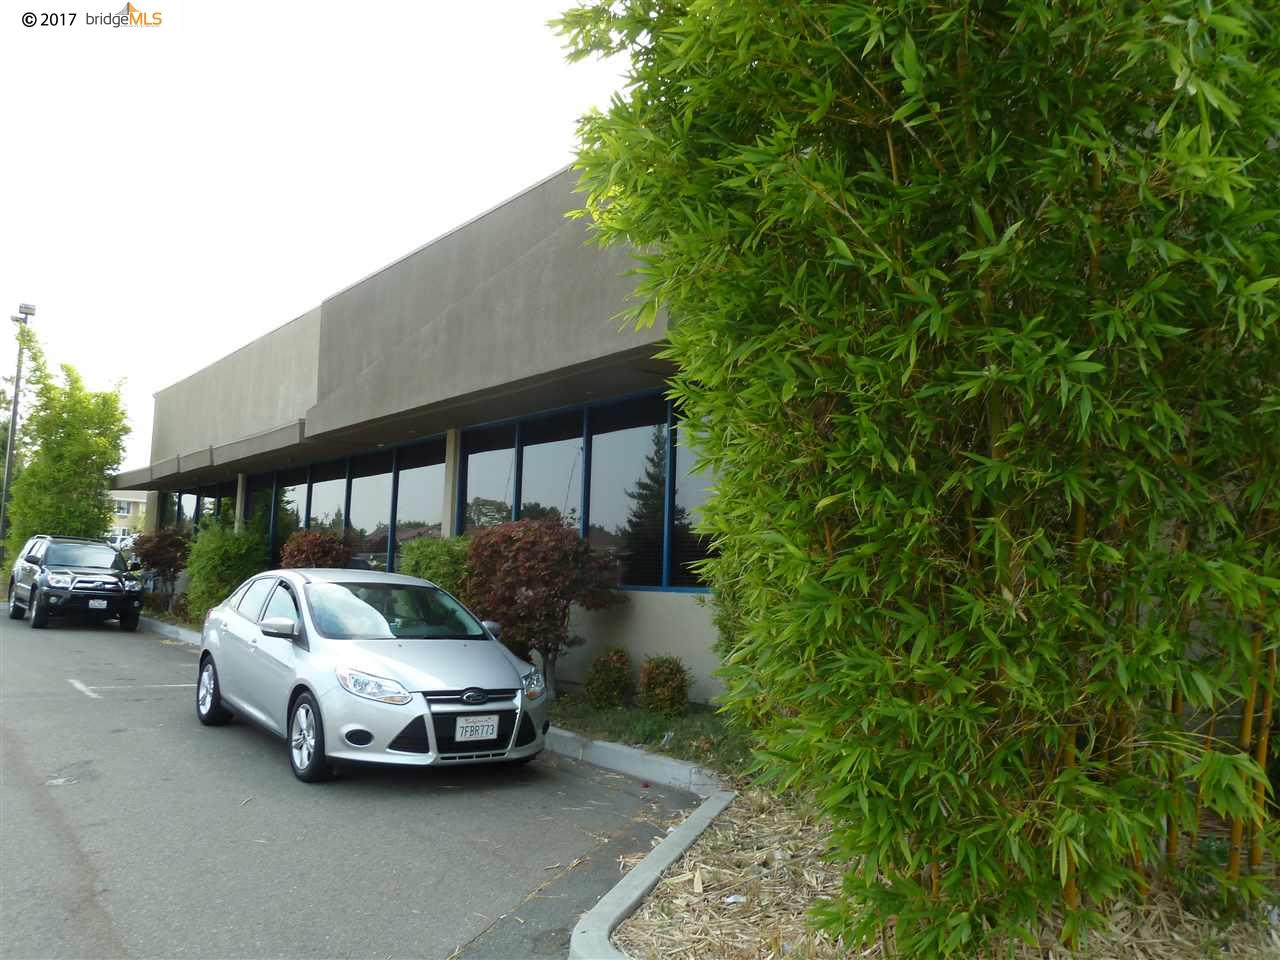 Additional photo for property listing at 4106 Lone Tree Way 4106 Lone Tree Way Antioch, California 94531 Estados Unidos